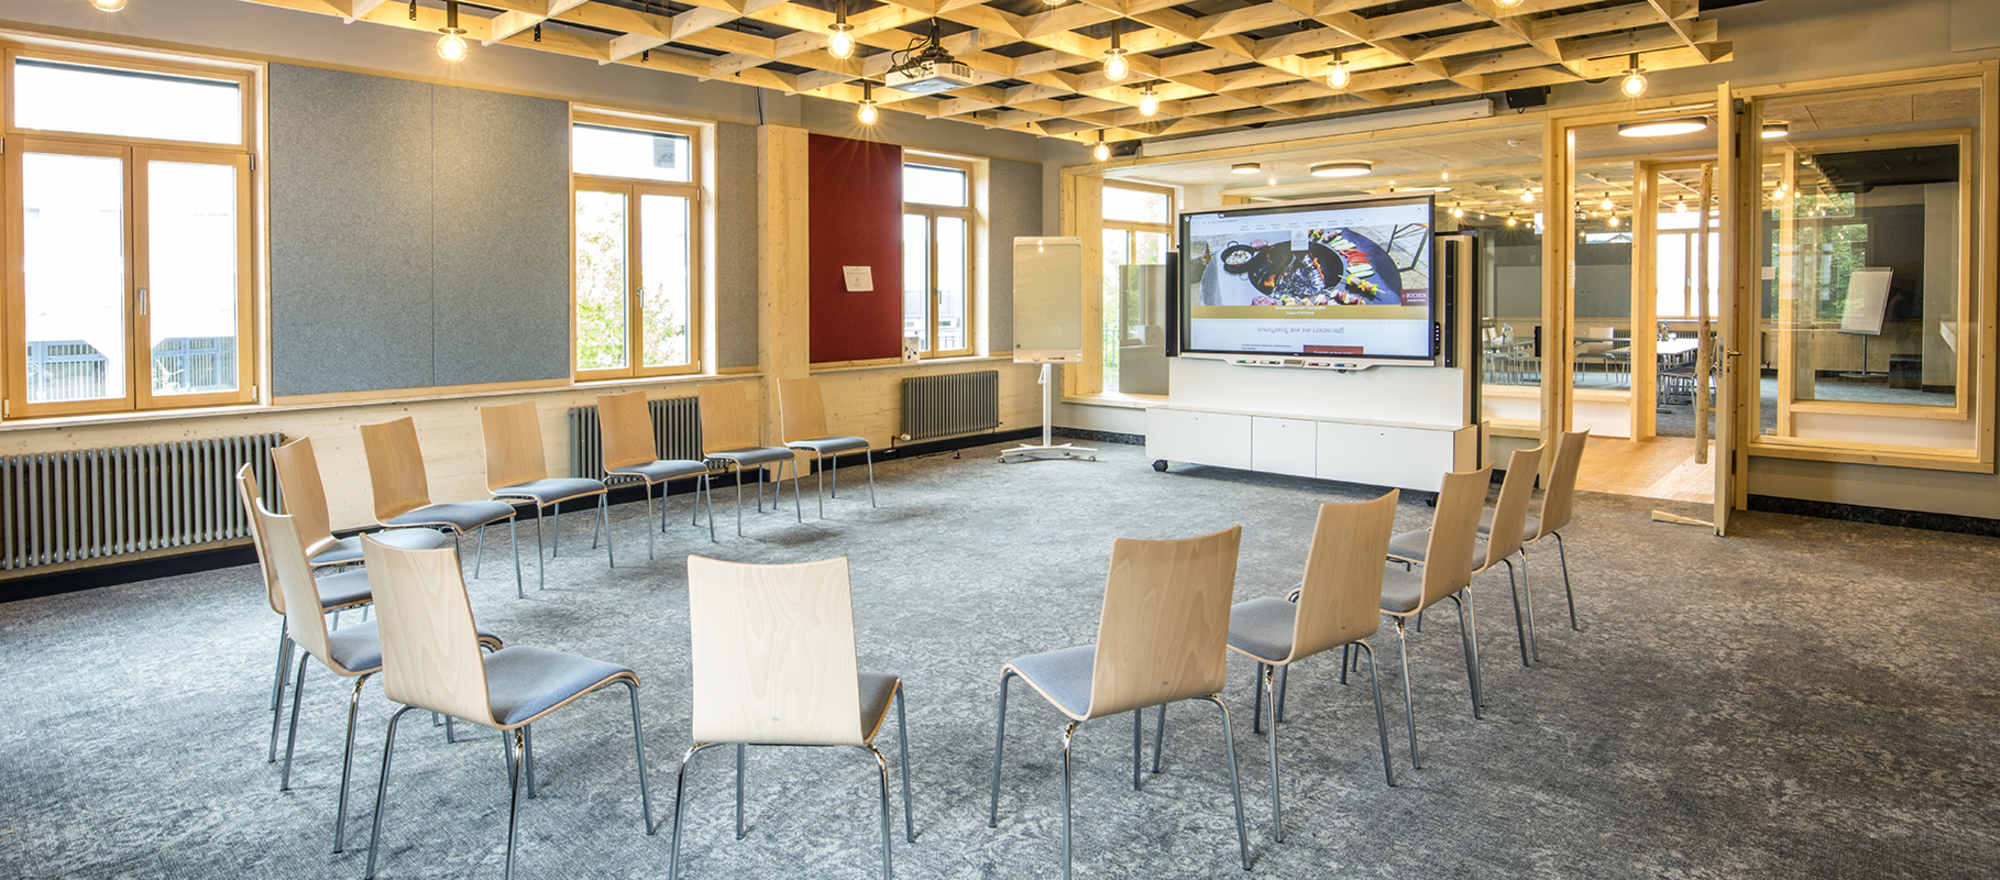 Ringhotel Zum Kreuz in Steinheim/Heidenheim circle in the meeting room